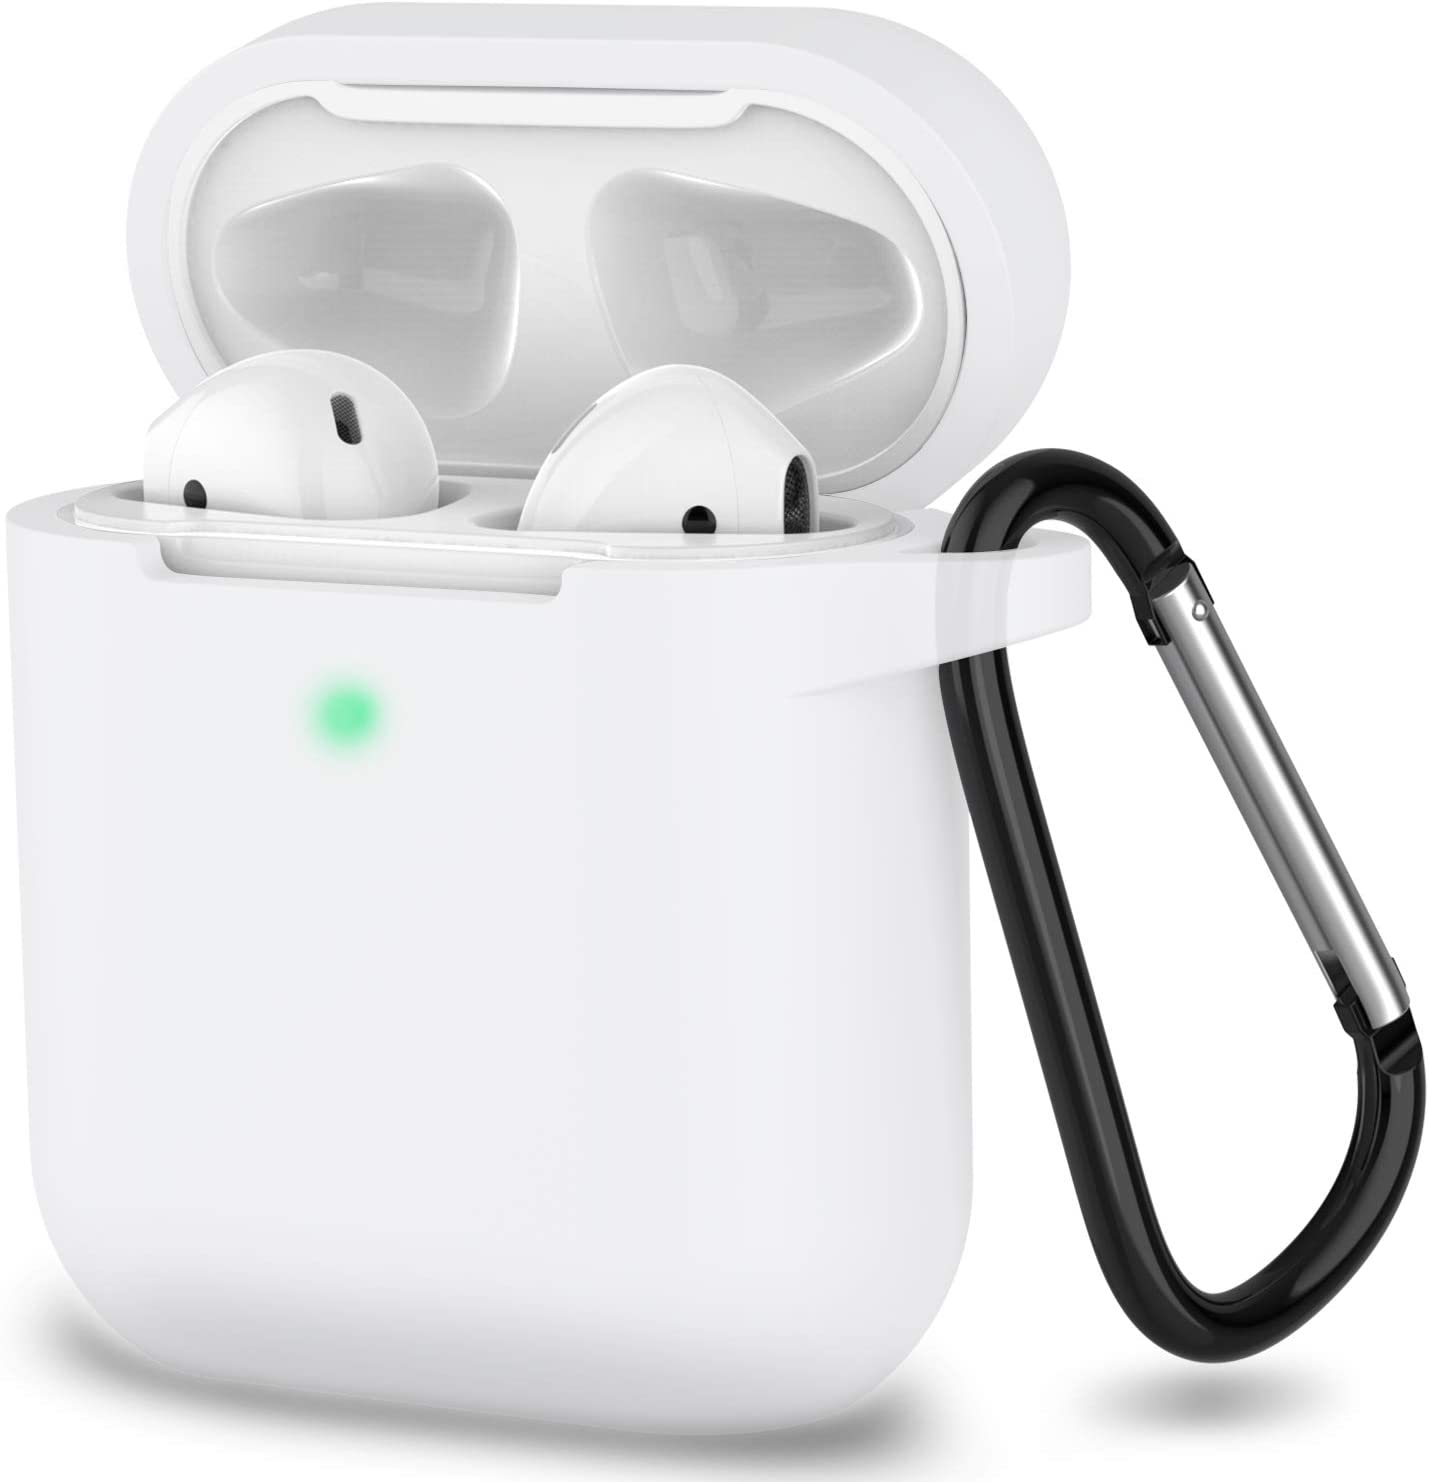 AirPods Case, Full Protective Silicone AirPods Accessories Cover Compatible with Apple AirPods 1&2 Wireless and Wired Charging Case(Front LED Visible),Clear